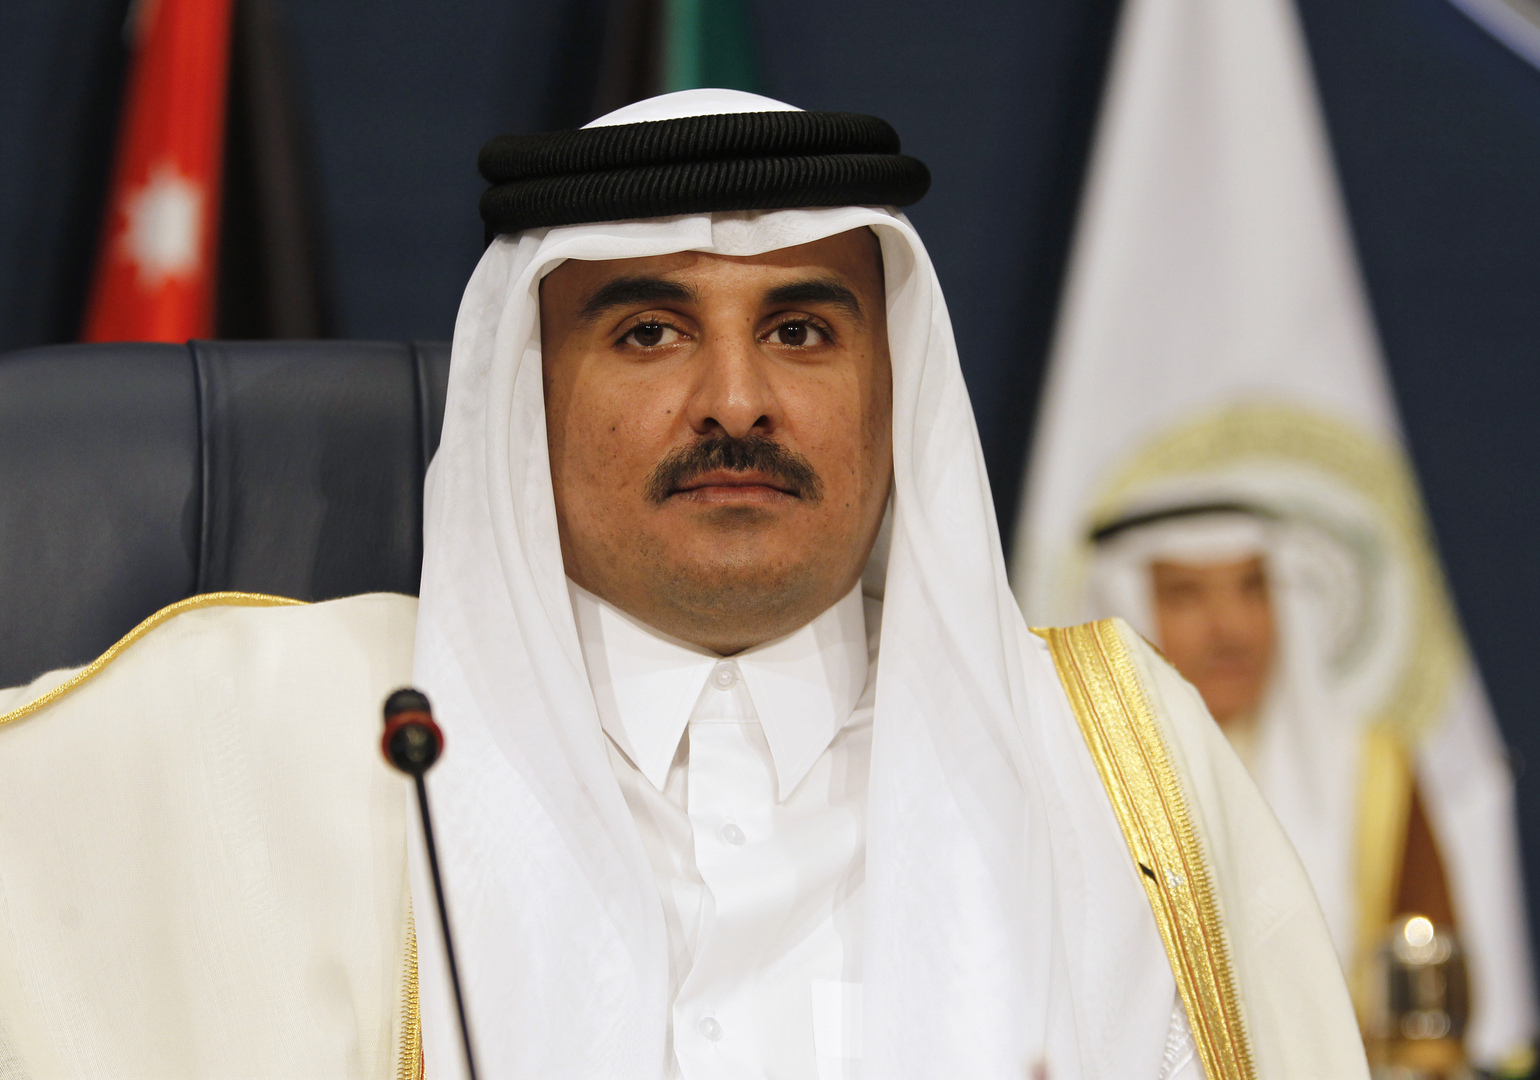 Kuwaiti message to the Emir of Qatar about the Gulf reconciliation